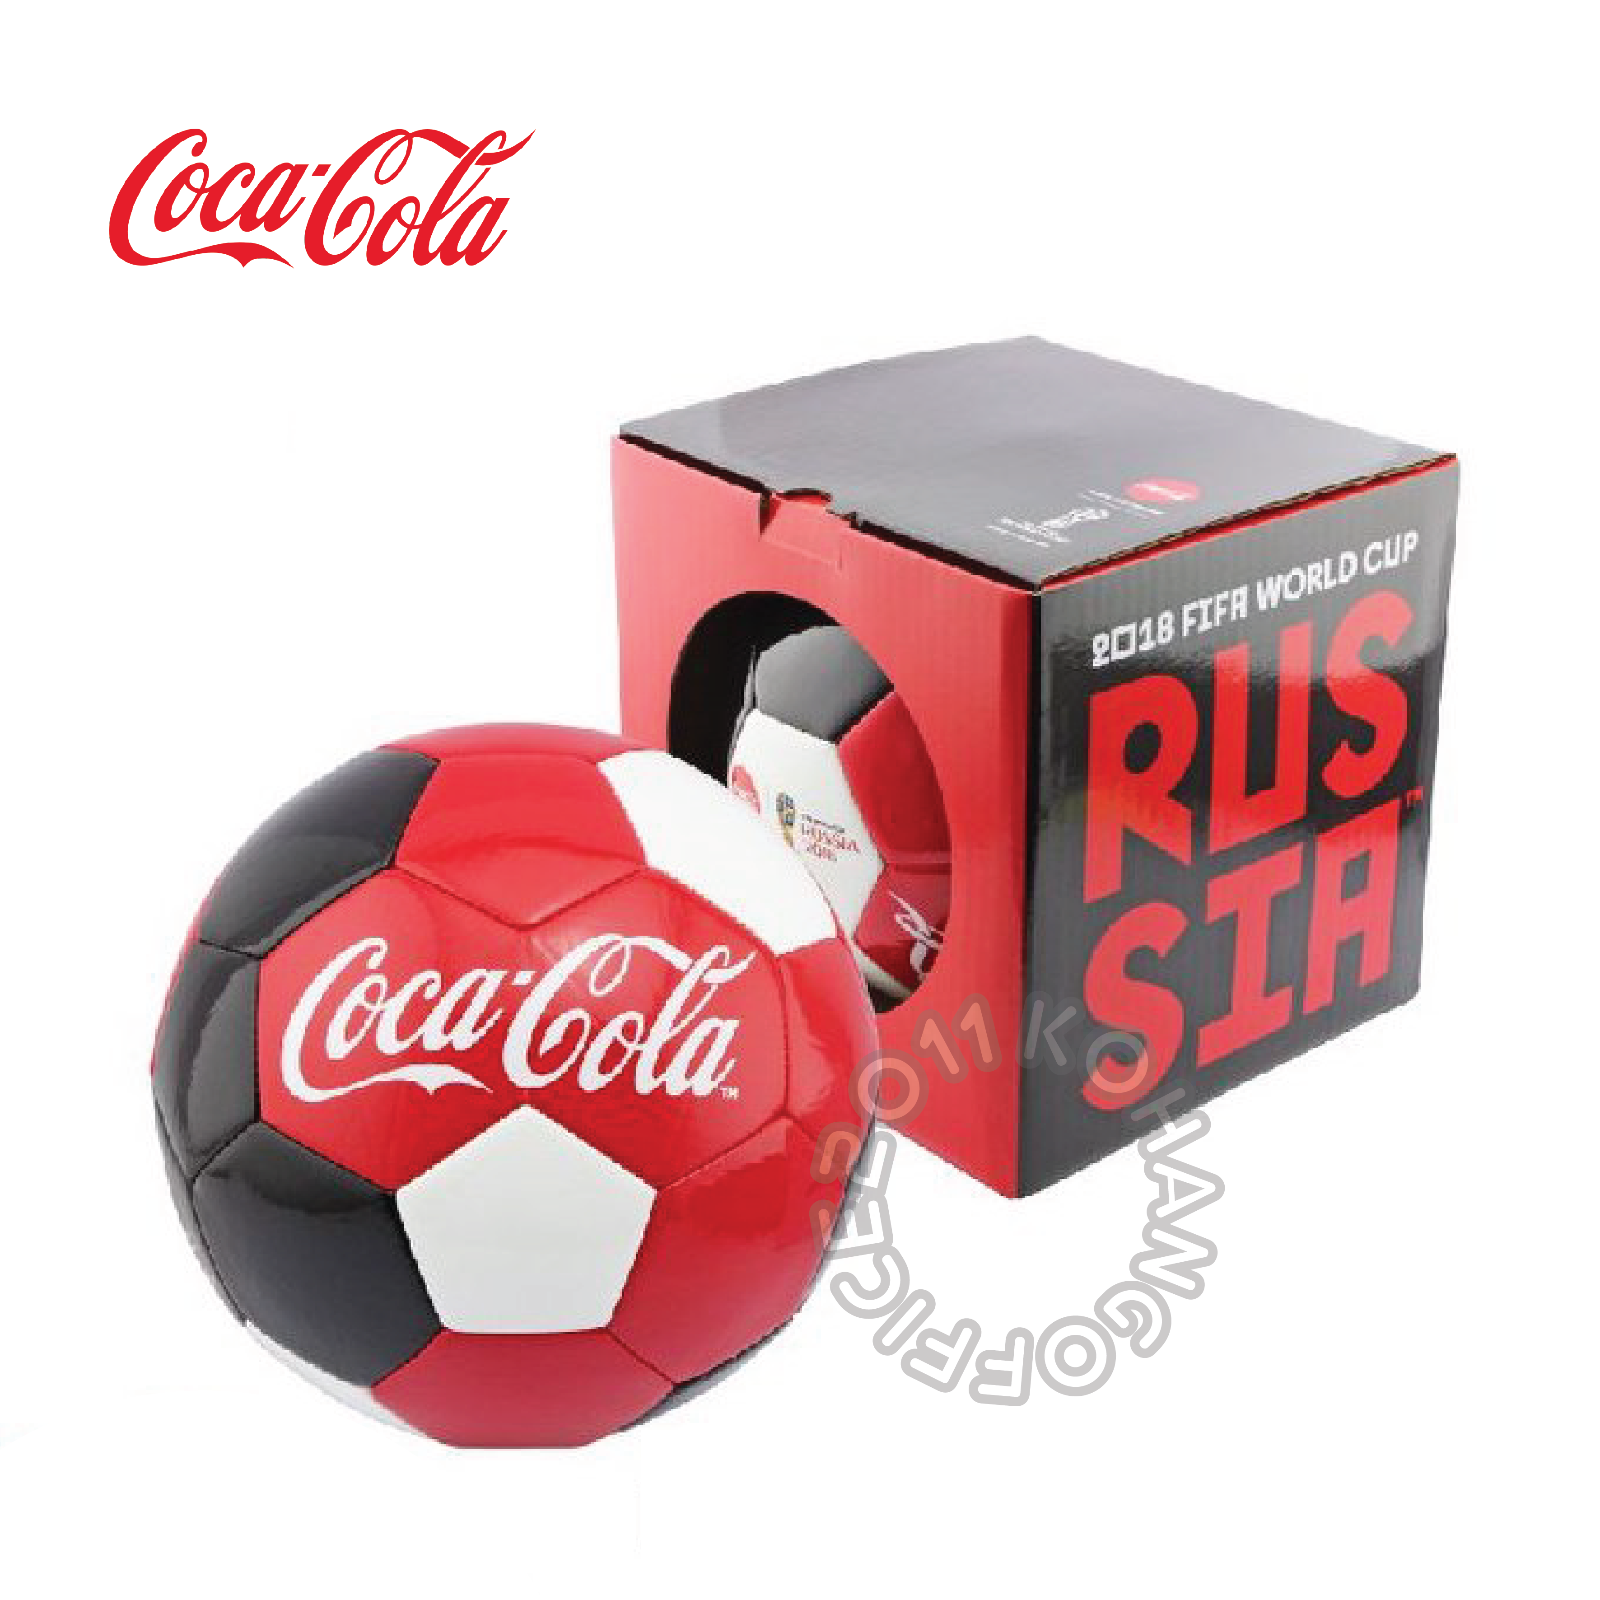 544b1ea4c Coca Cola x 7-11 SOCCER BALL 2018 FIFA World Cup RUSSIA Limited edition  Discount Price 39.99 Free Shipping Buy it Now